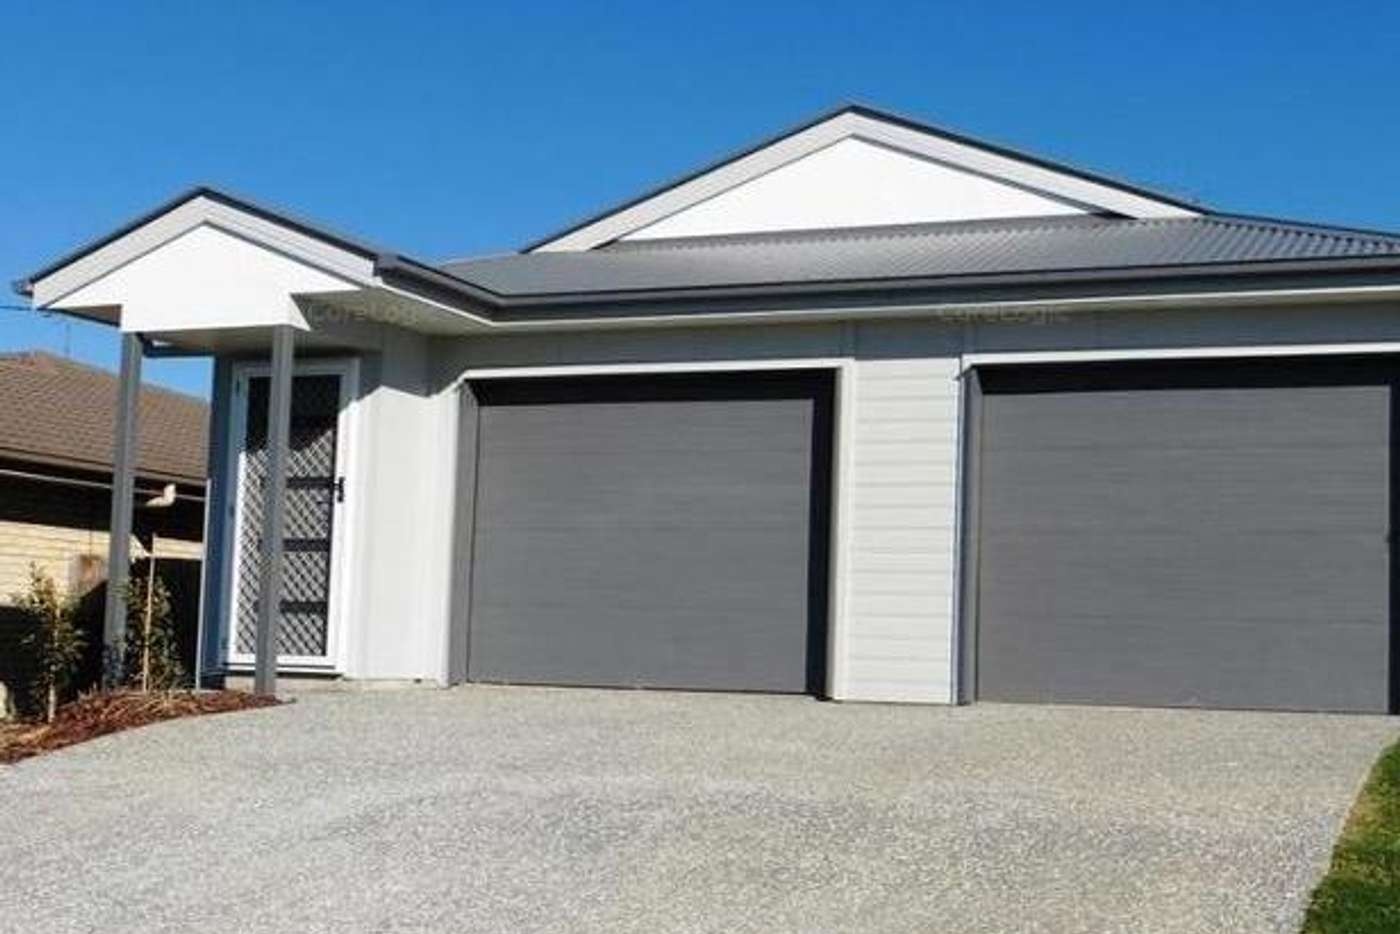 Main view of Homely house listing, 1/4 Stathis Place, Bundamba QLD 4304